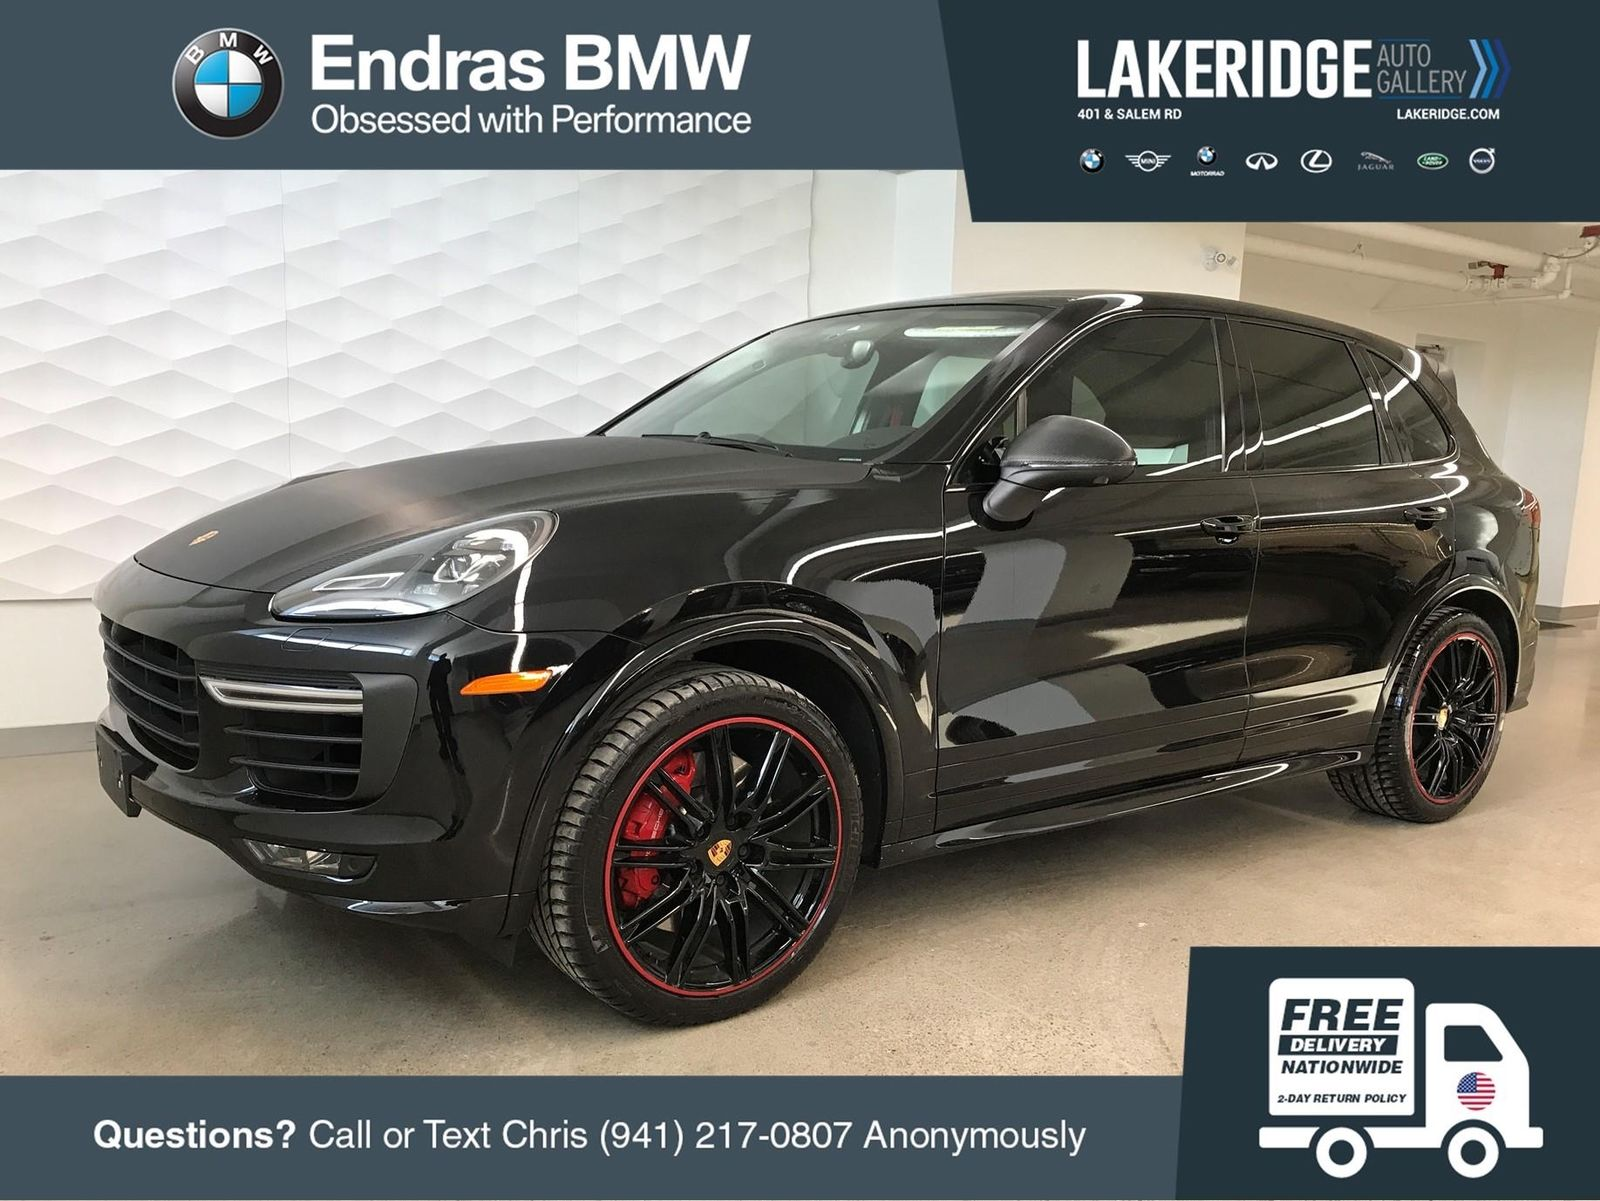 2016 Porsche Cayenne Gts 2016 Porsche Cayenne Gts 9 416 Miles Jet Black Metallic Sport Utility V6 Cylinde 2017 2018 Is In Stock And For Sale 24carshop Com